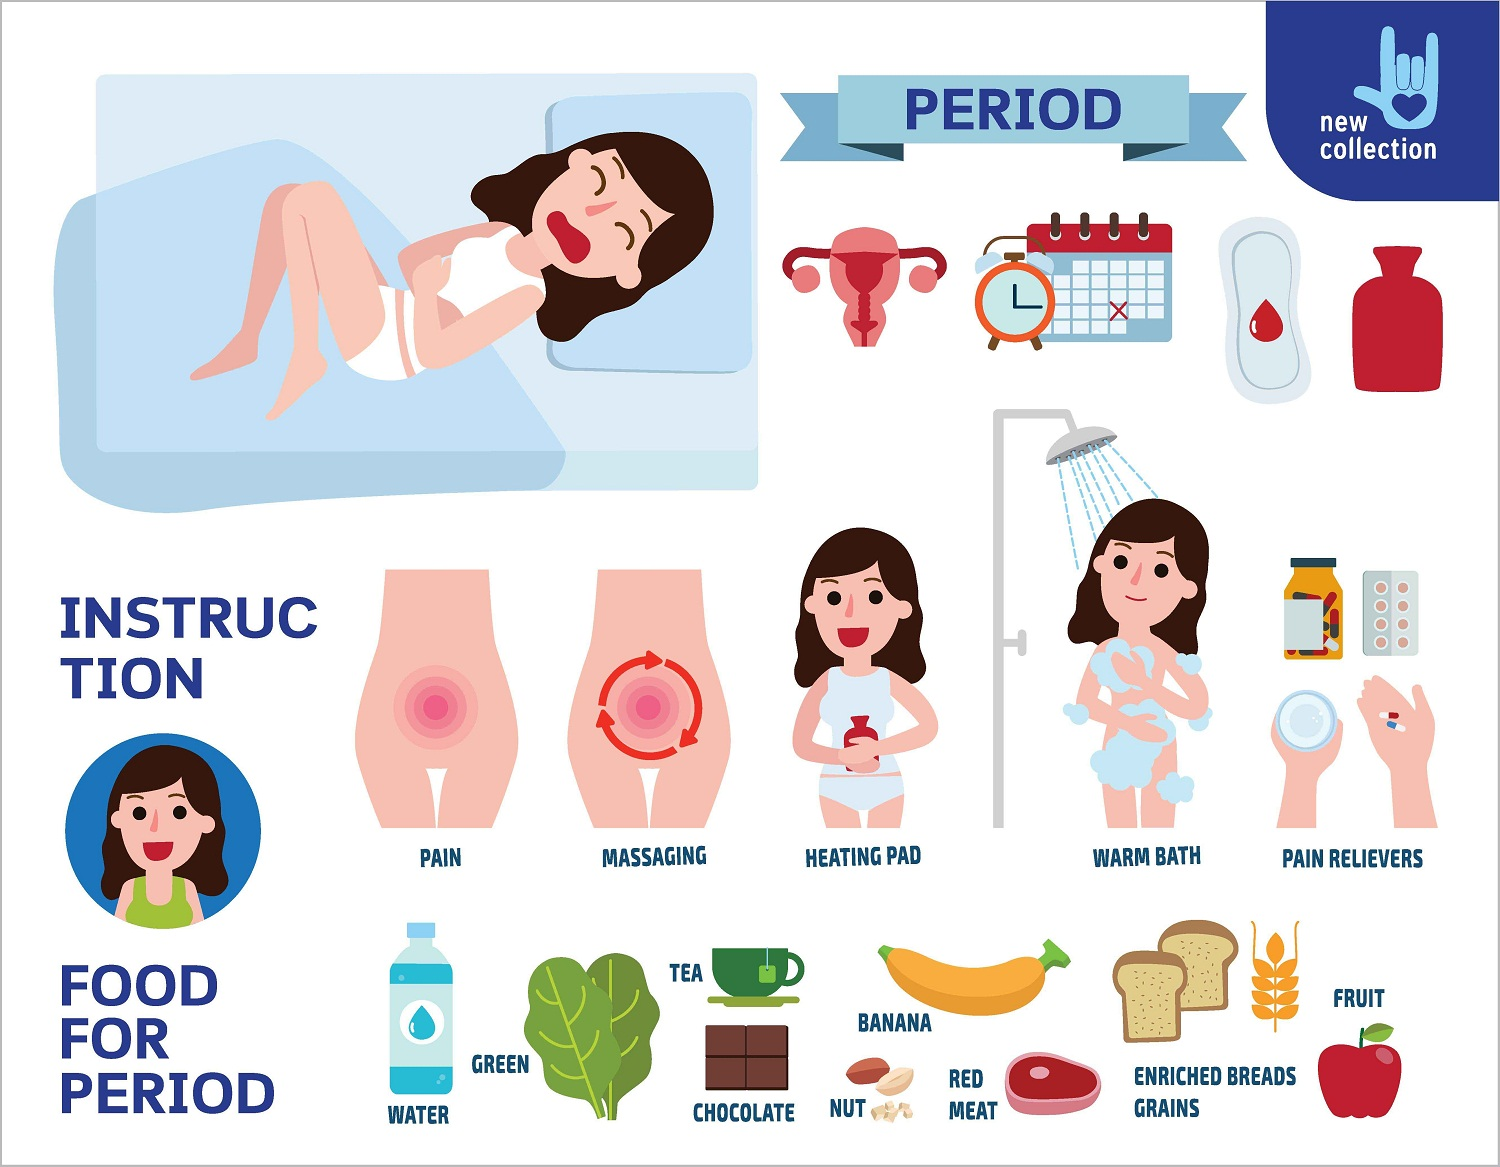 Tips for women in menstruation